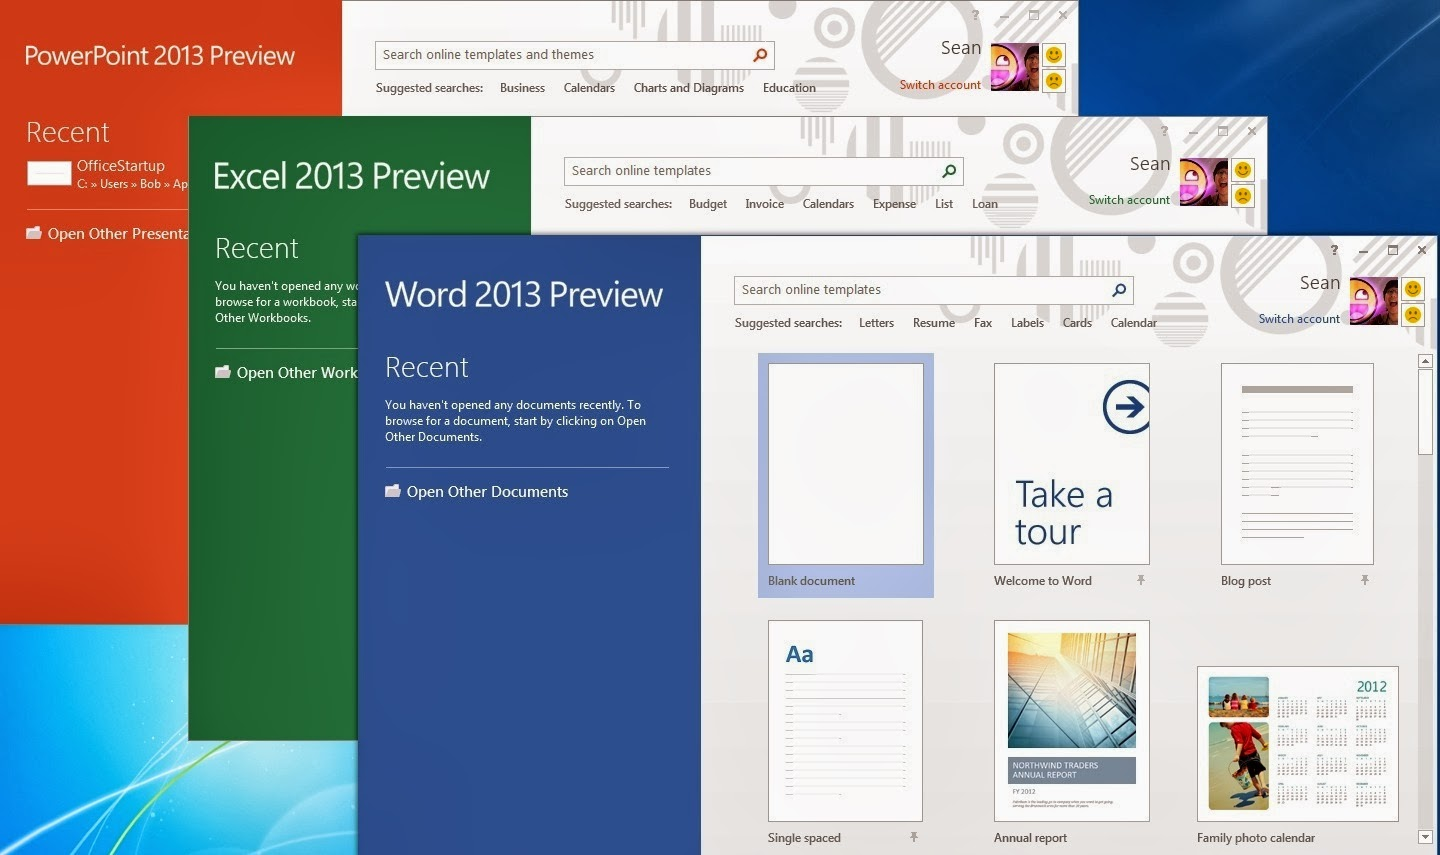 399 download now., softwaremicrosoft office total